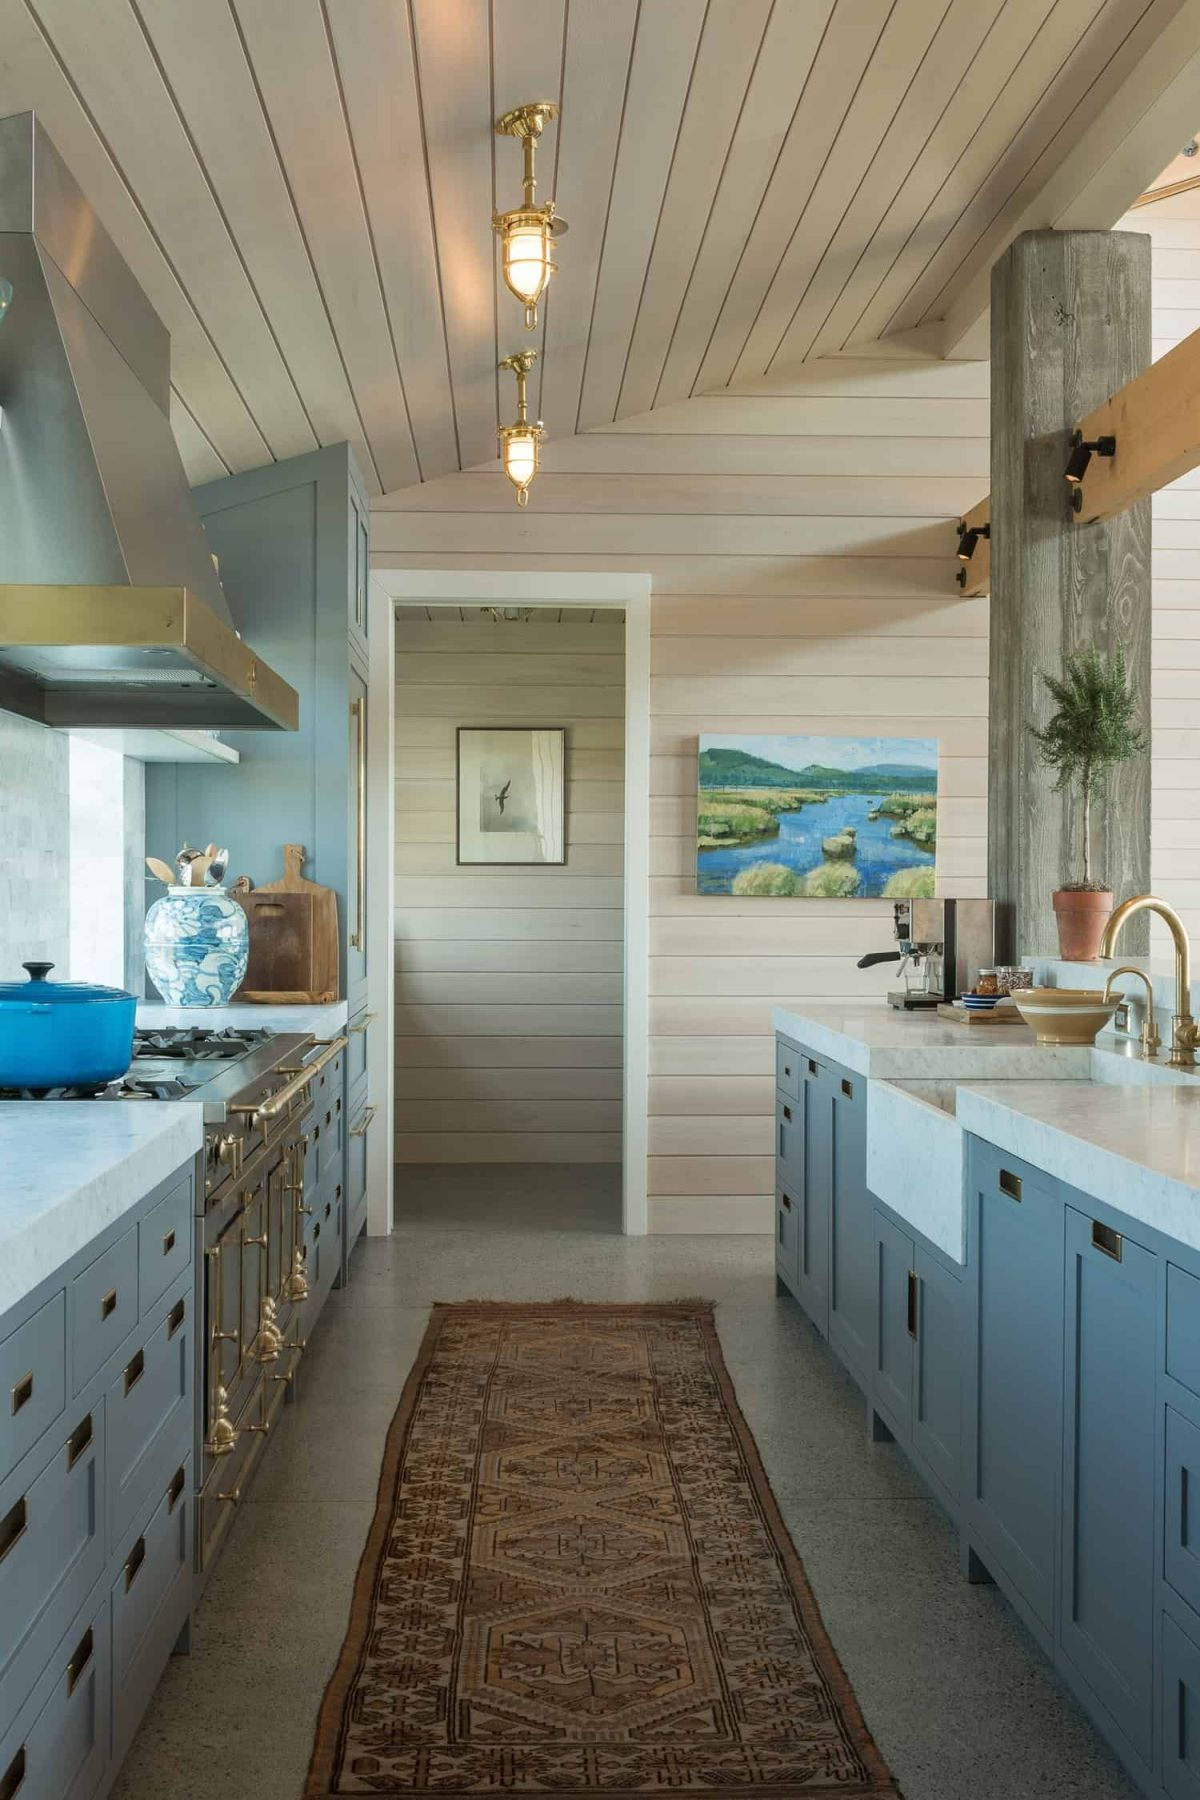 The kitchen is a very inviting space with a retro design and elegant marble countertops